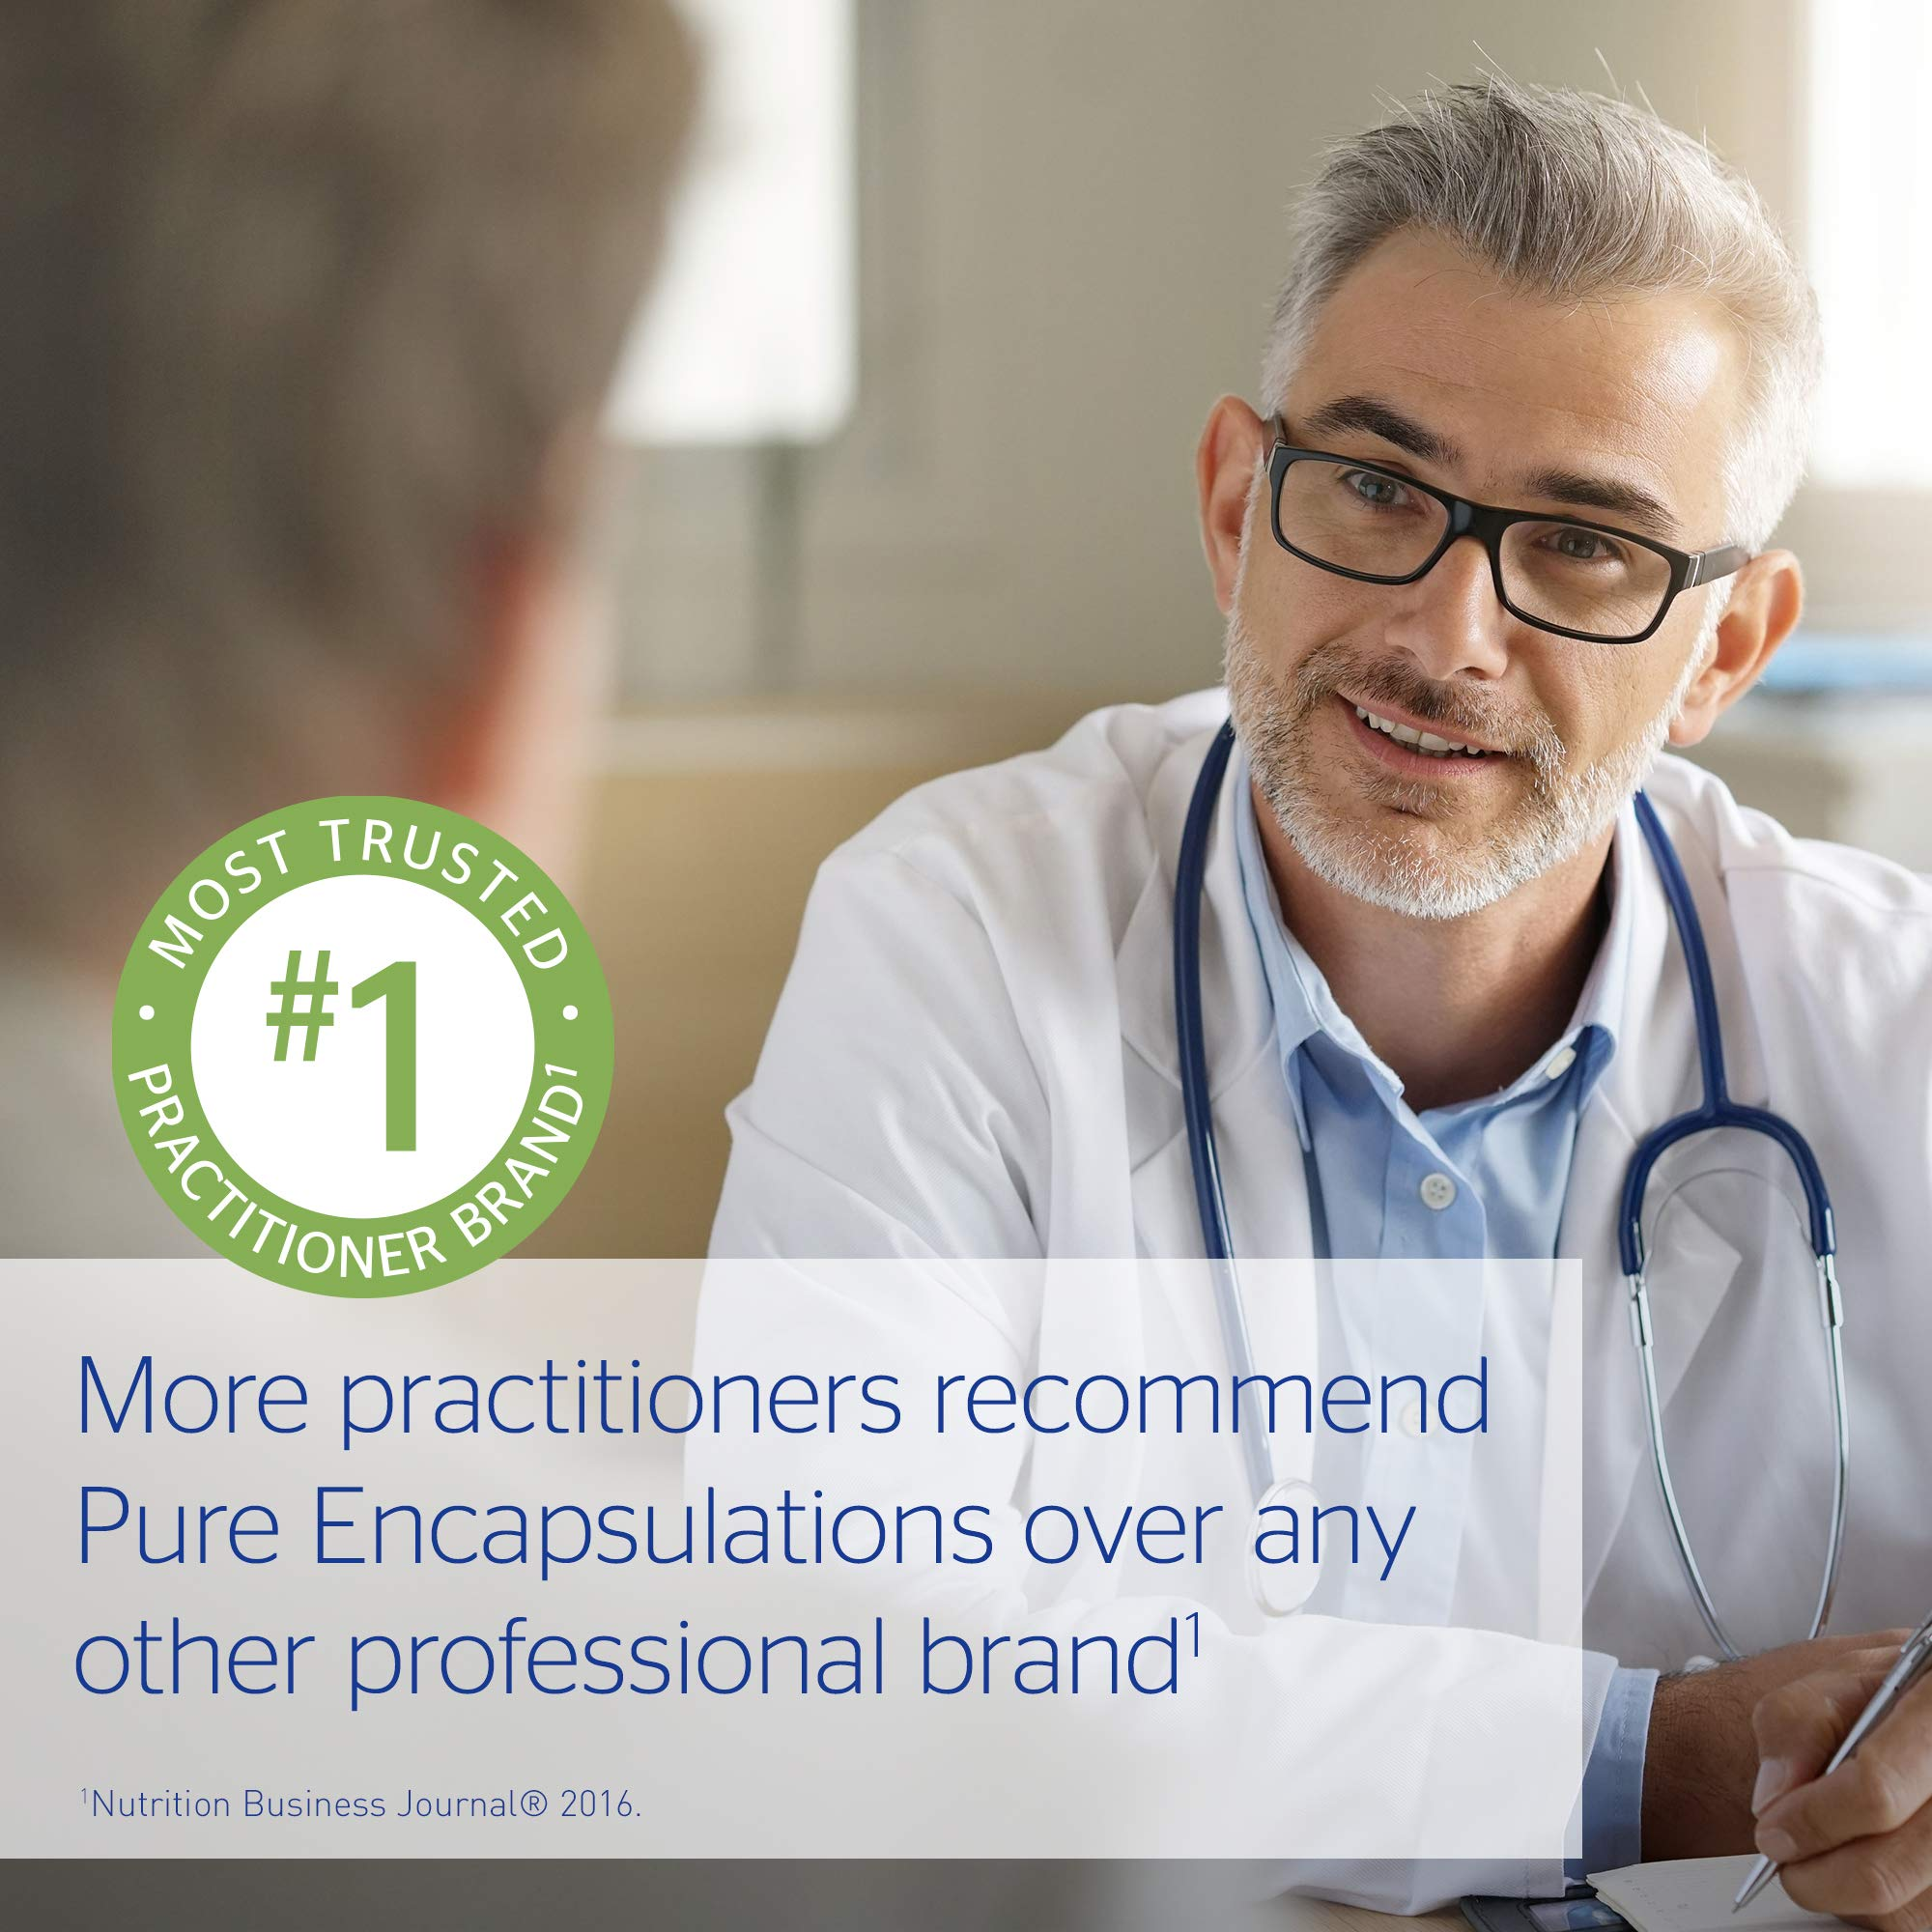 Pure Encapsulations - Glucosamine + Chondroitin with MSM - Healthy Cartilage Strength and Resilience* - 240 Capsules by Pure Encapsulations (Image #6)